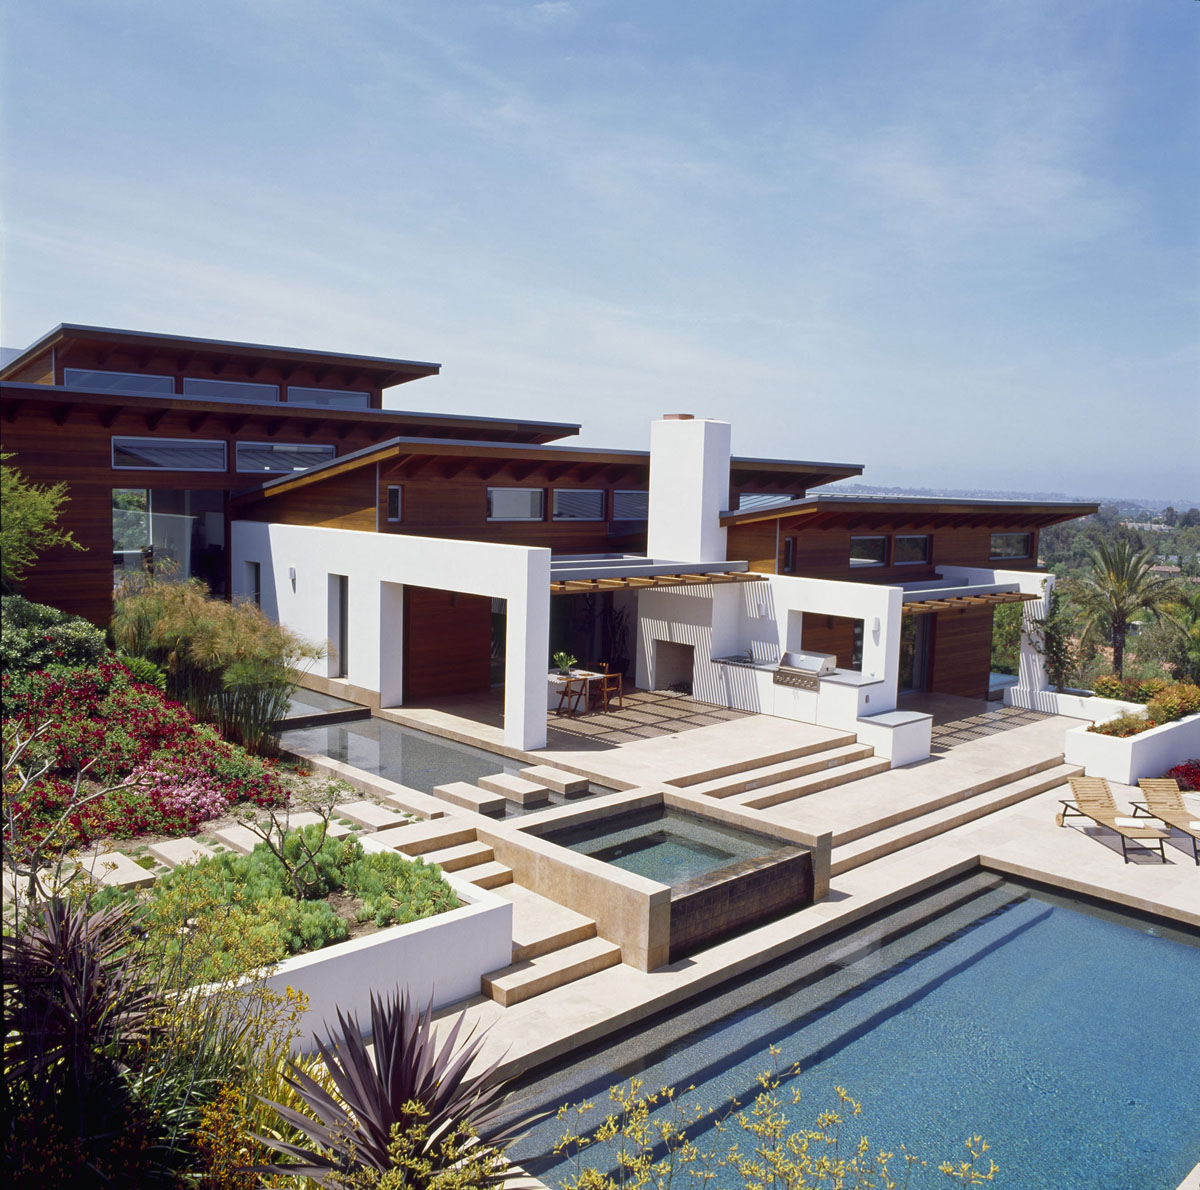 Timeless architectural estate in rancho santa fe for Contemporary architecture design